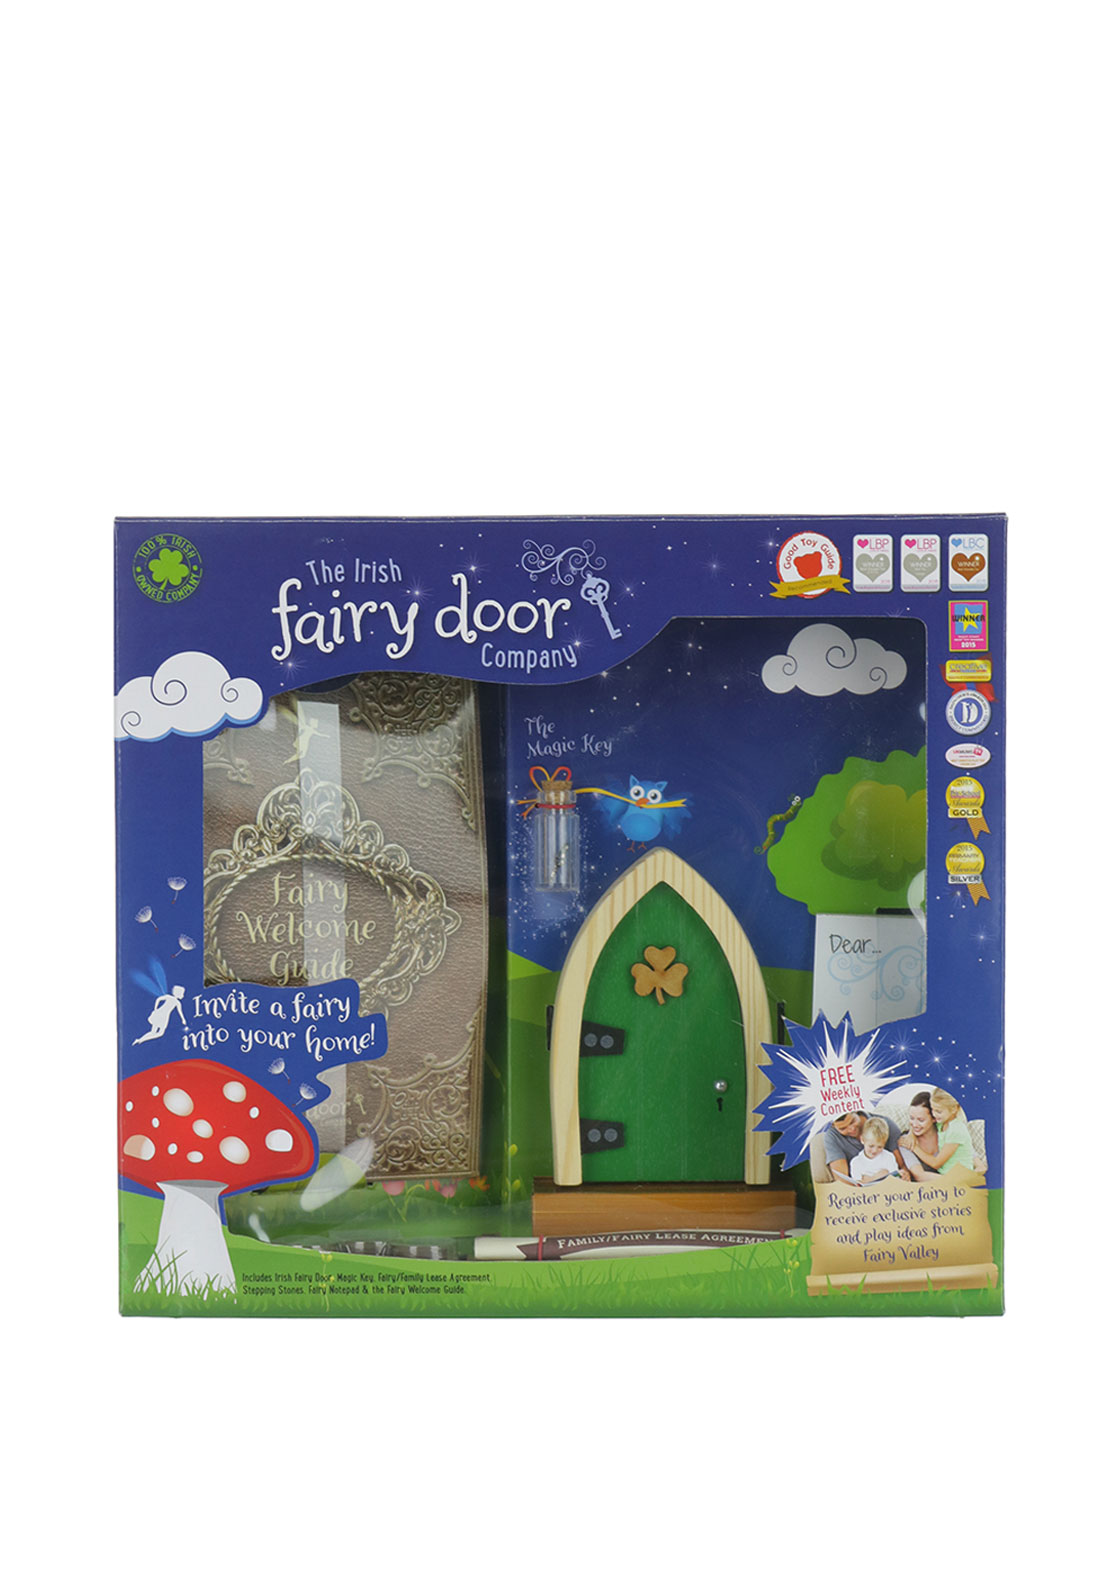 The irish fairy door company arched fairy door green for The irish fairy door company facebook